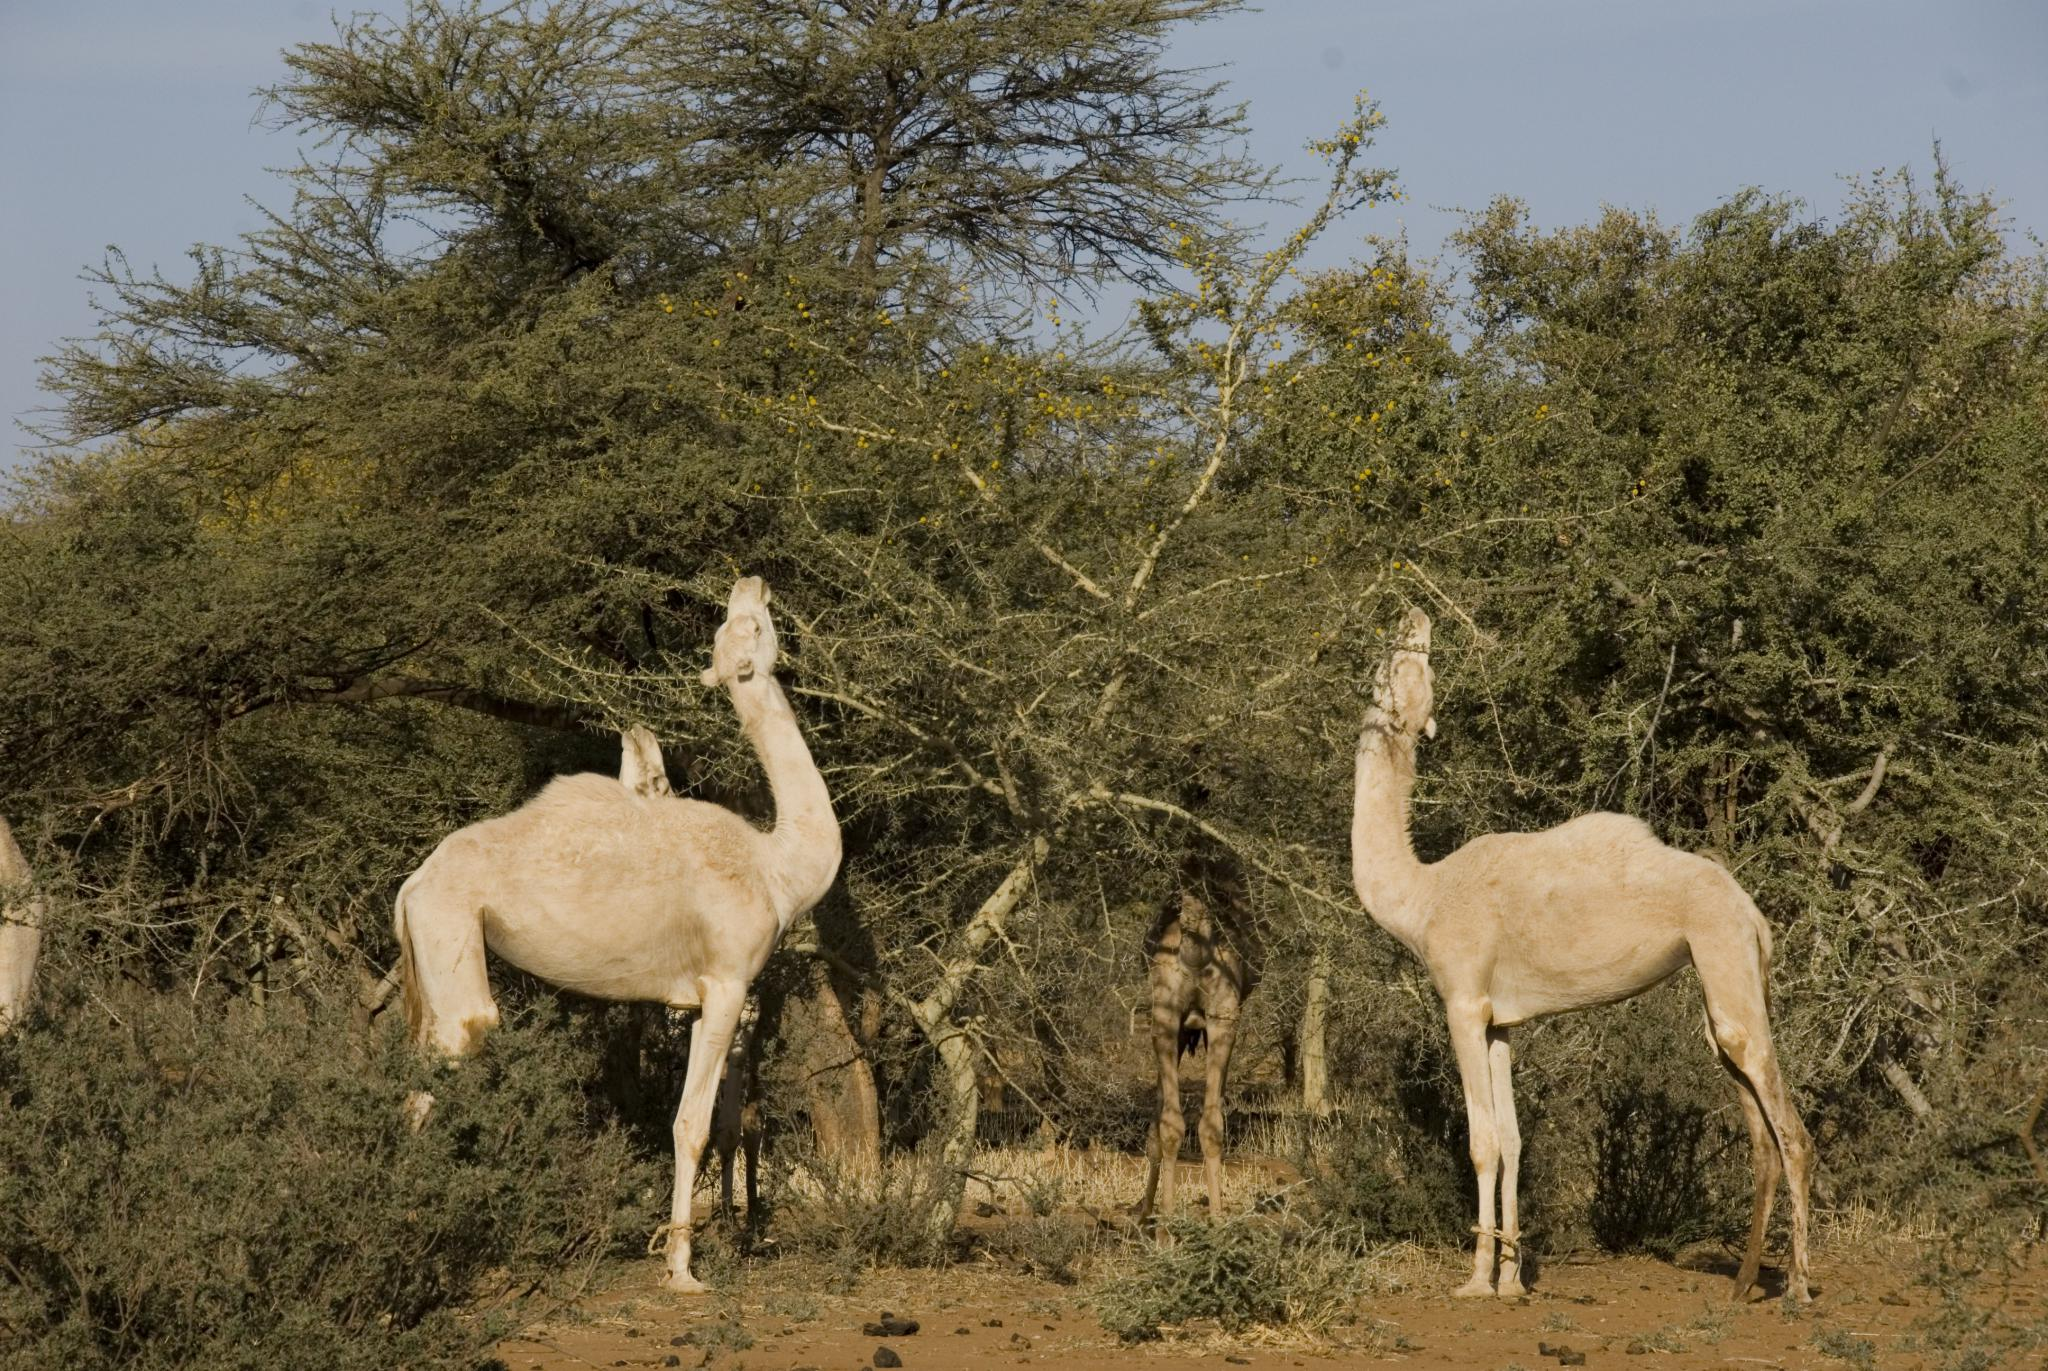 Dense tree parklands near Tahoua, Niger allow year round browsing by livestock ©Michael Fitzgerald